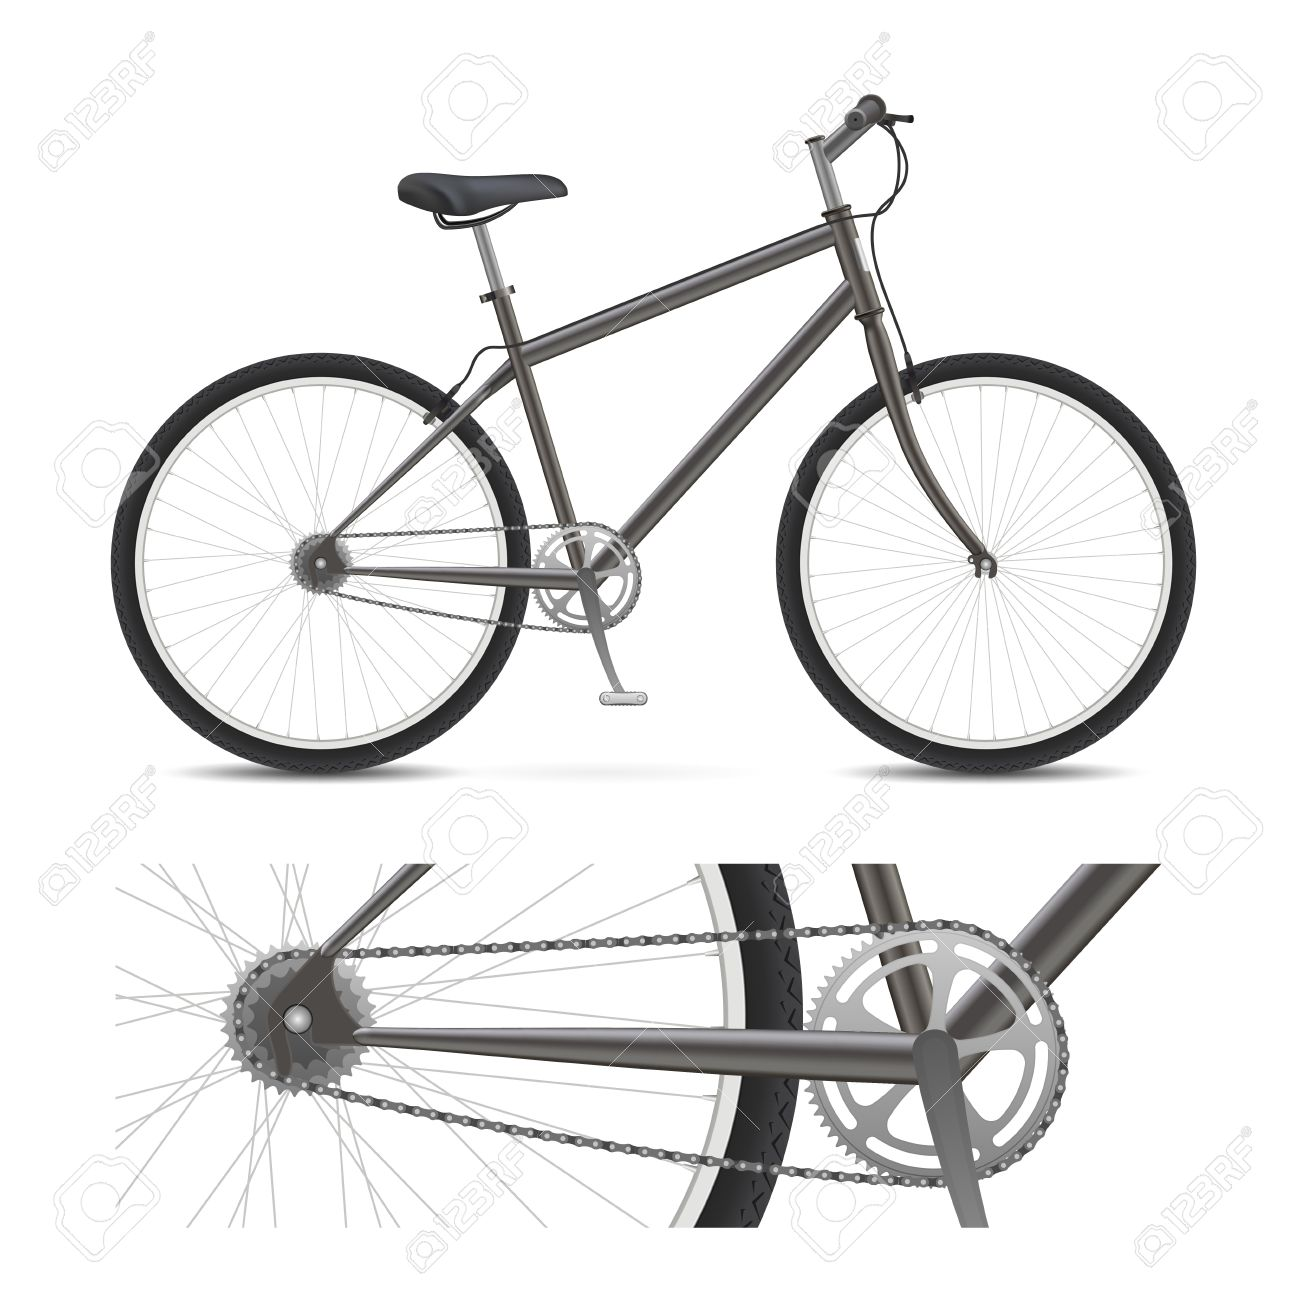 Bicycle with wheels, pedals, chain gear, and tires Stock Vector - 12813277